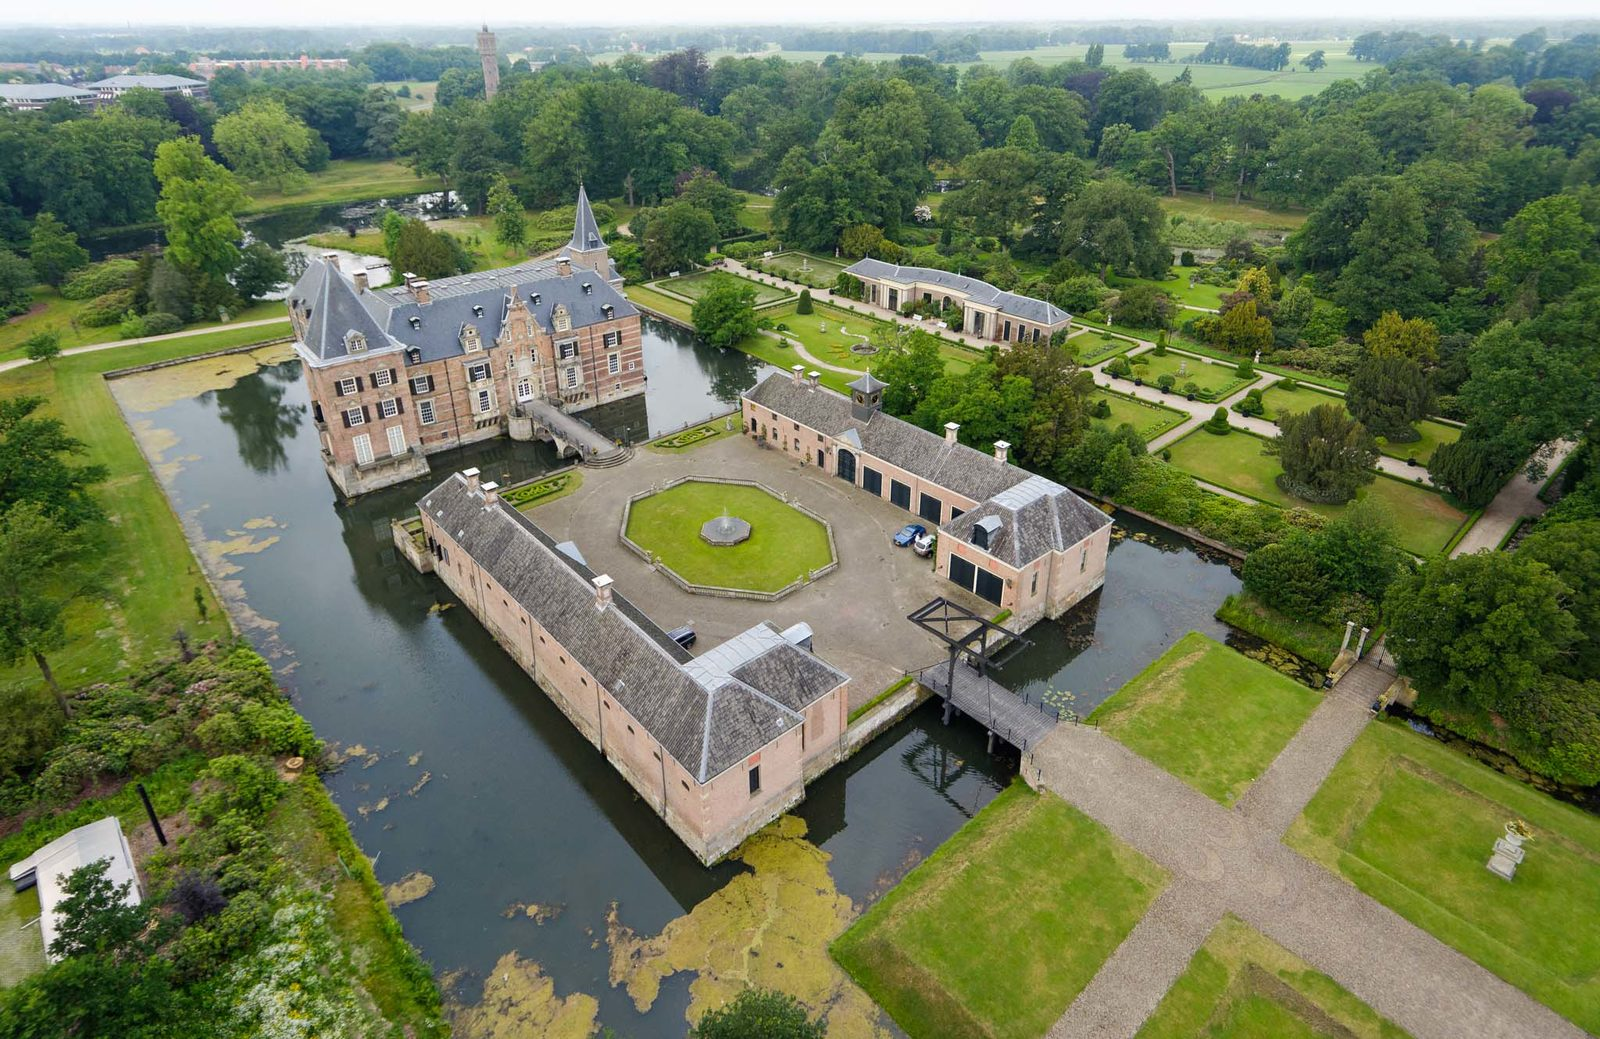 Kasteel Twickel Delden Twente